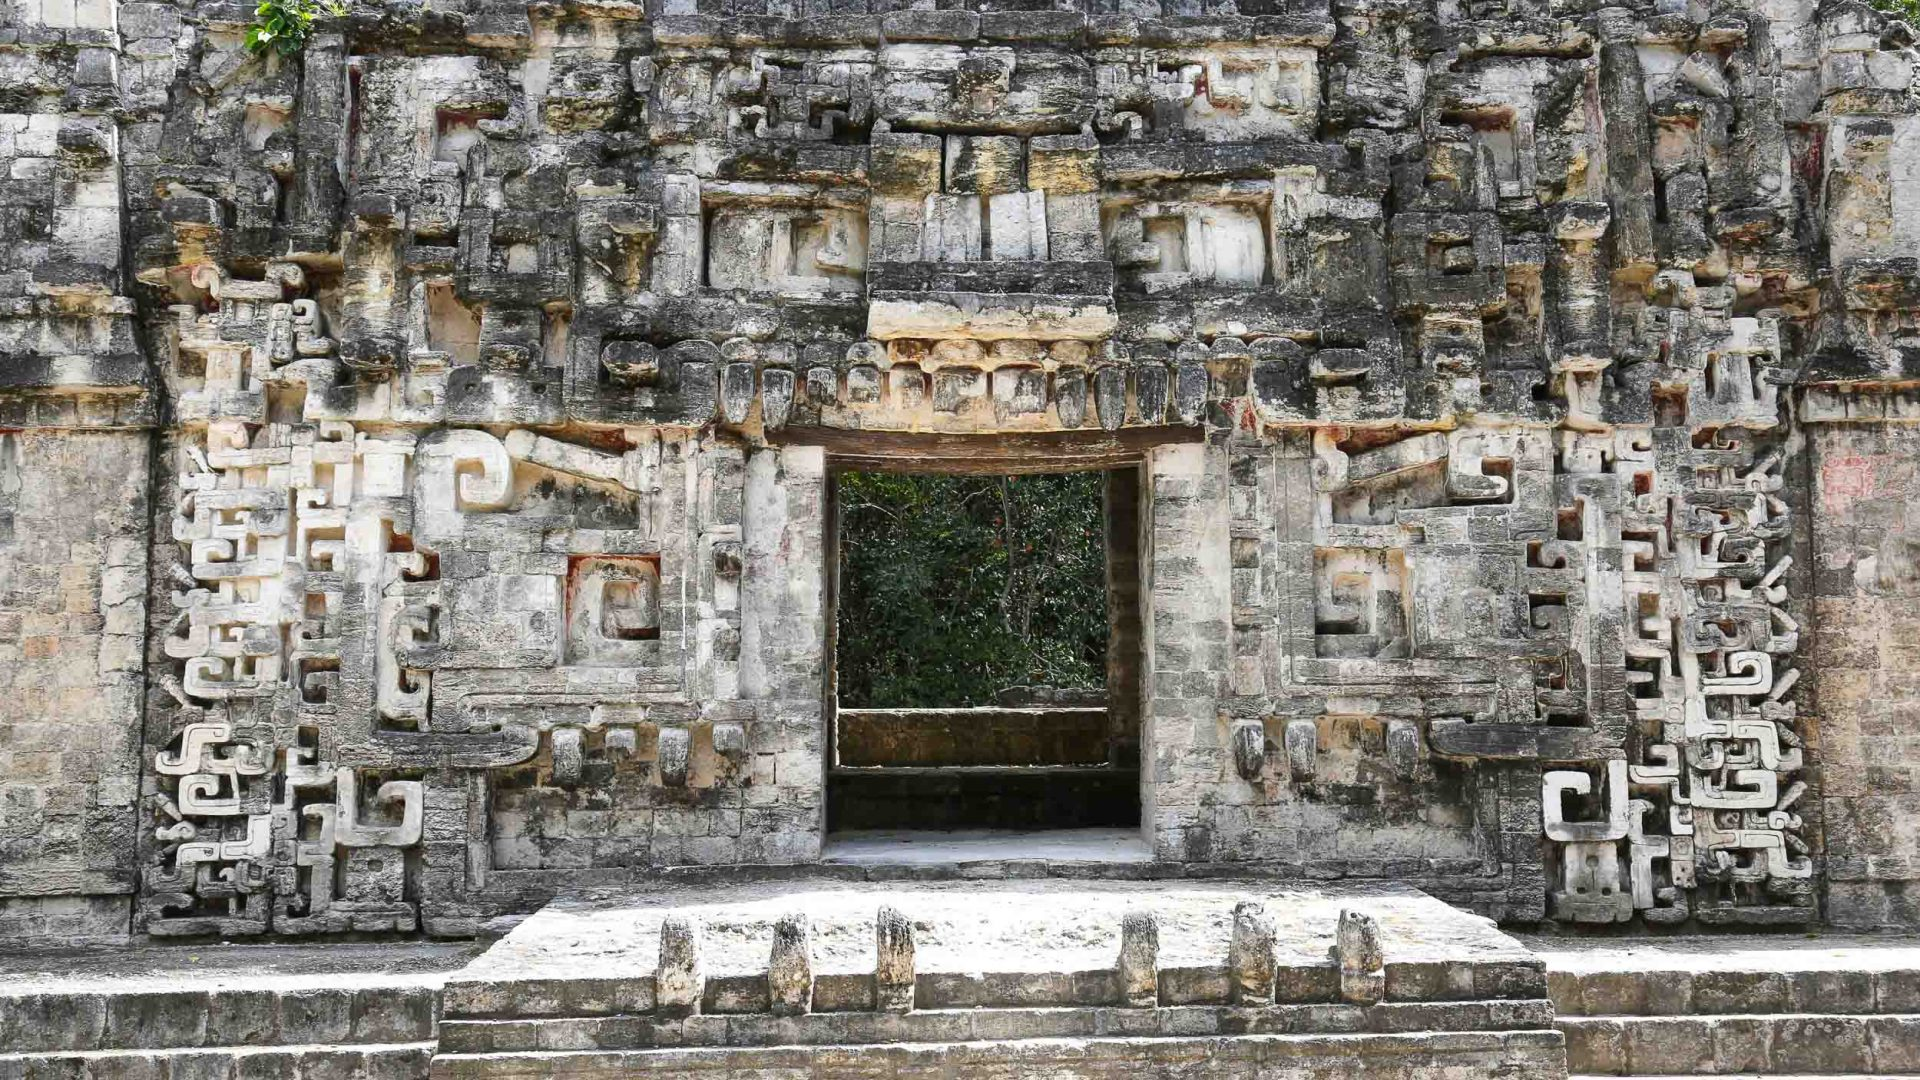 Ruins of Chicanna in the Yucatán Peninsula, Mexico.